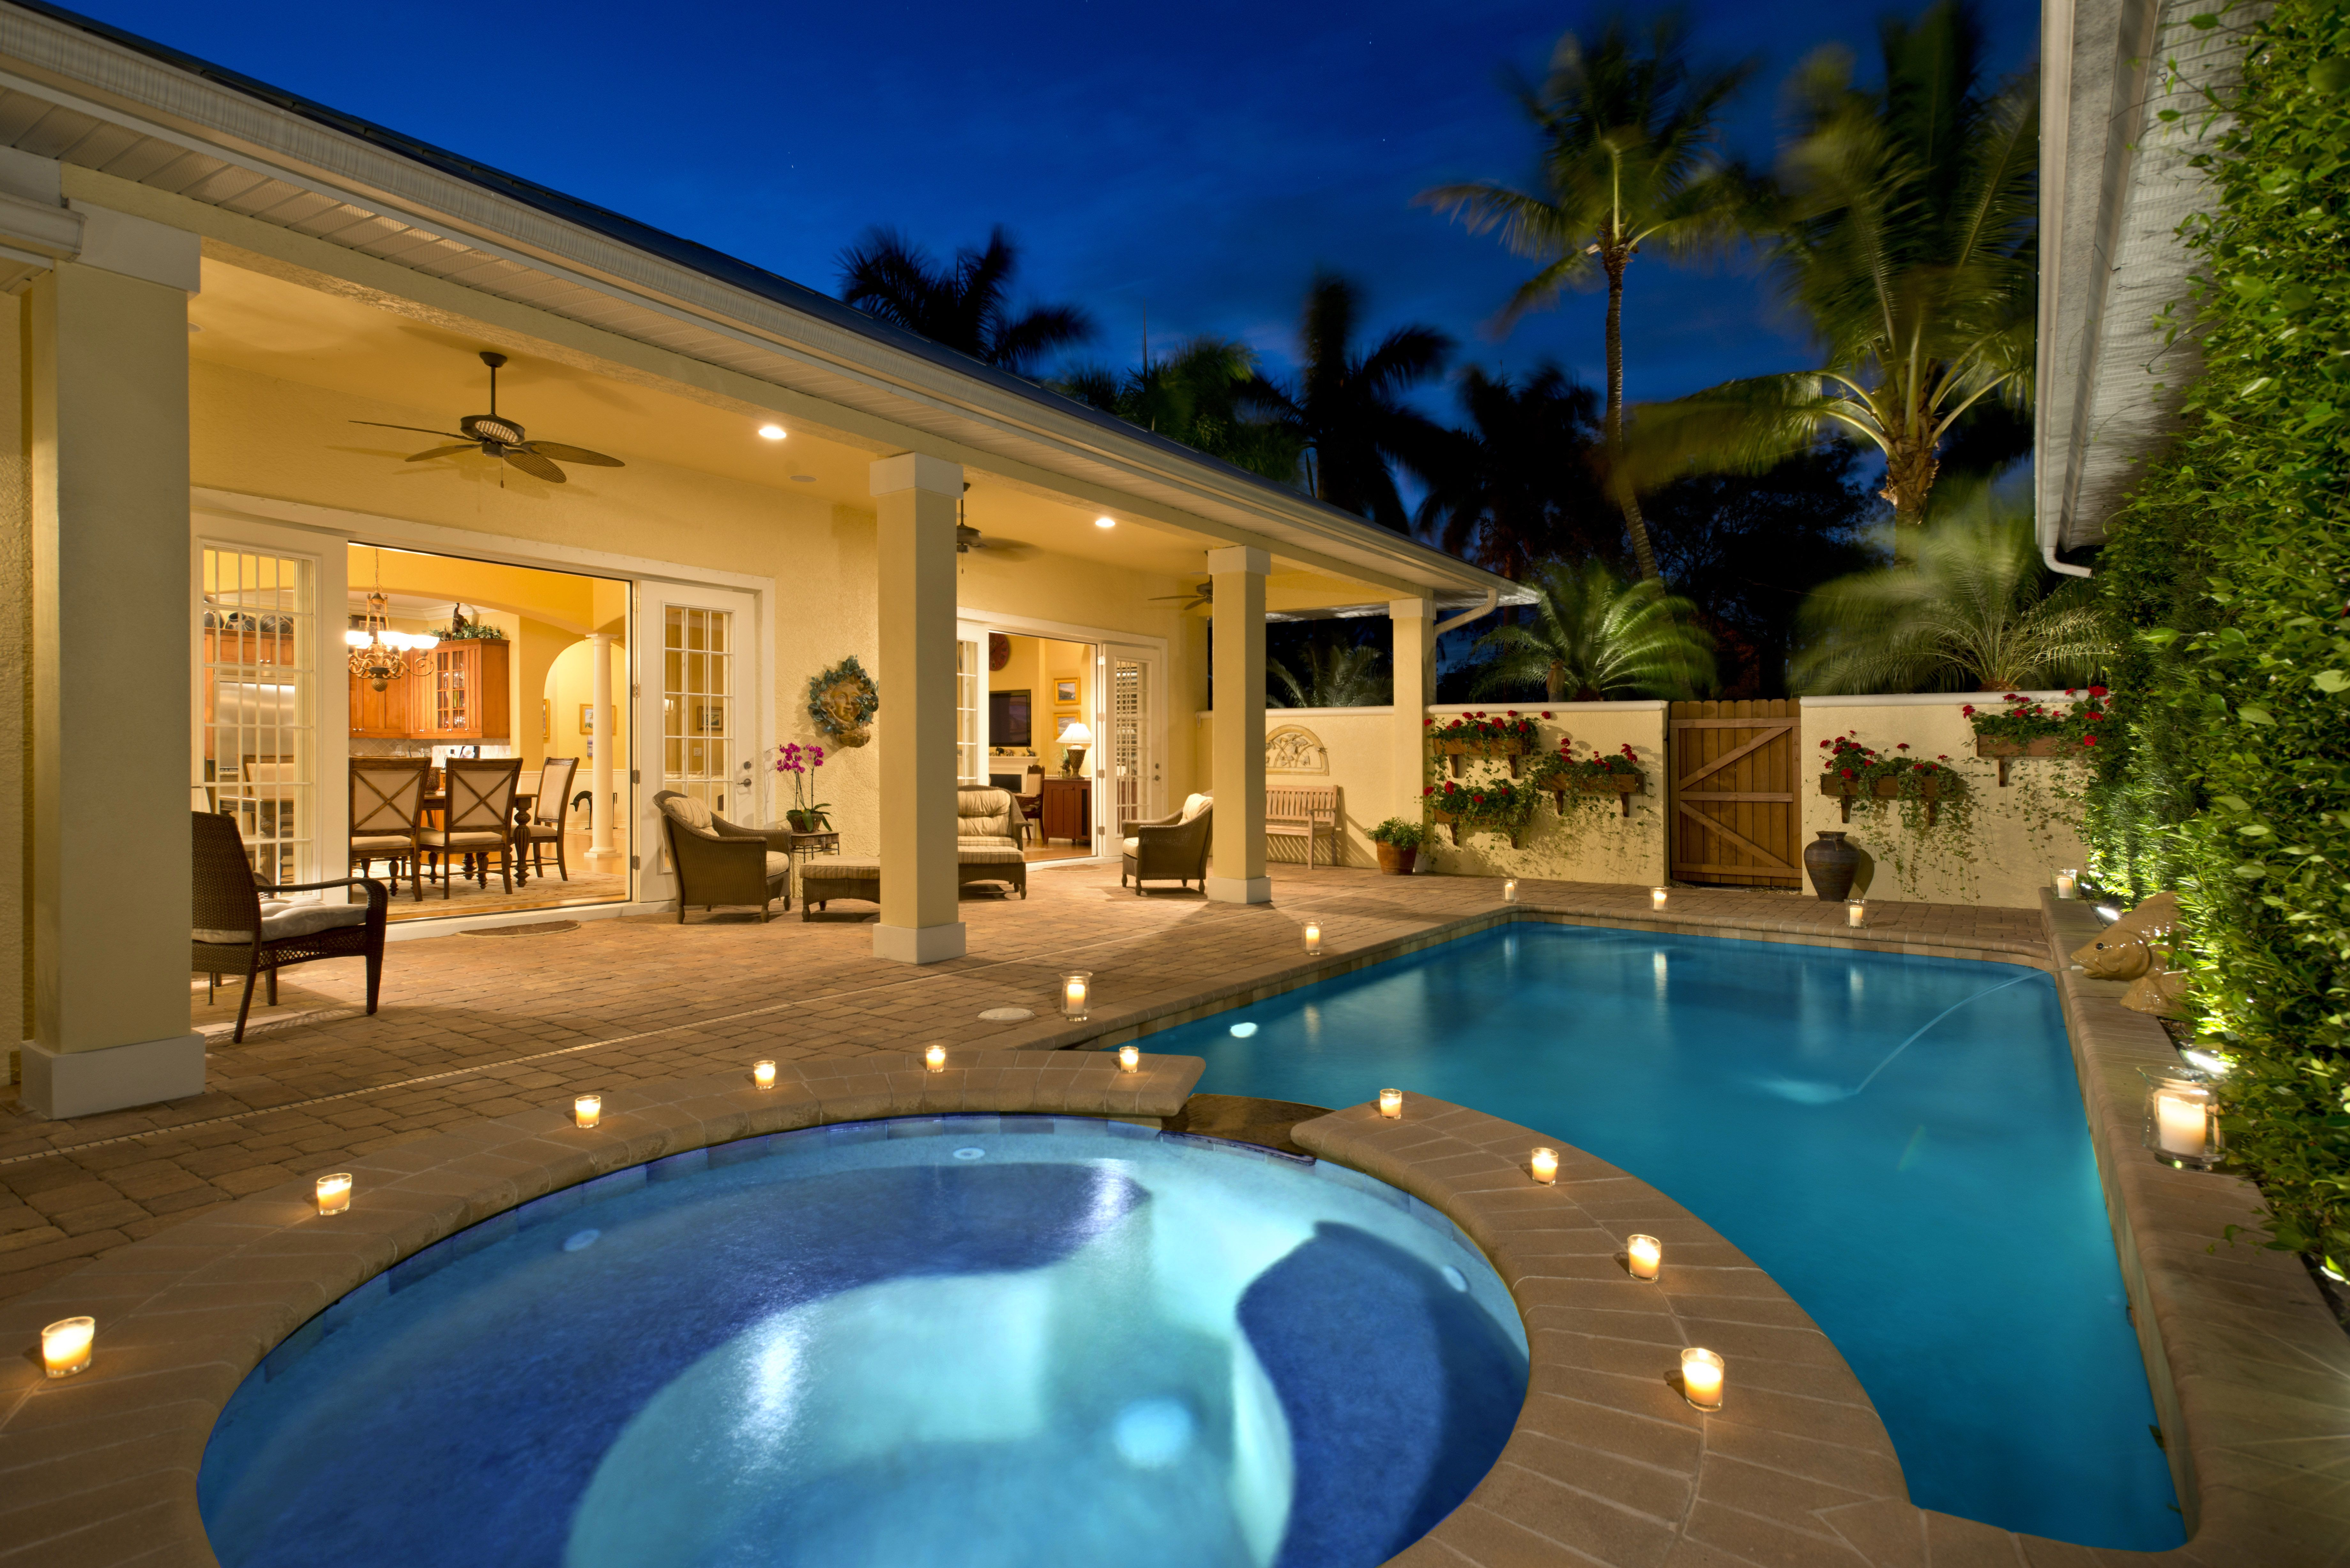 Enjoy the covered courtyard complete with pool spa and